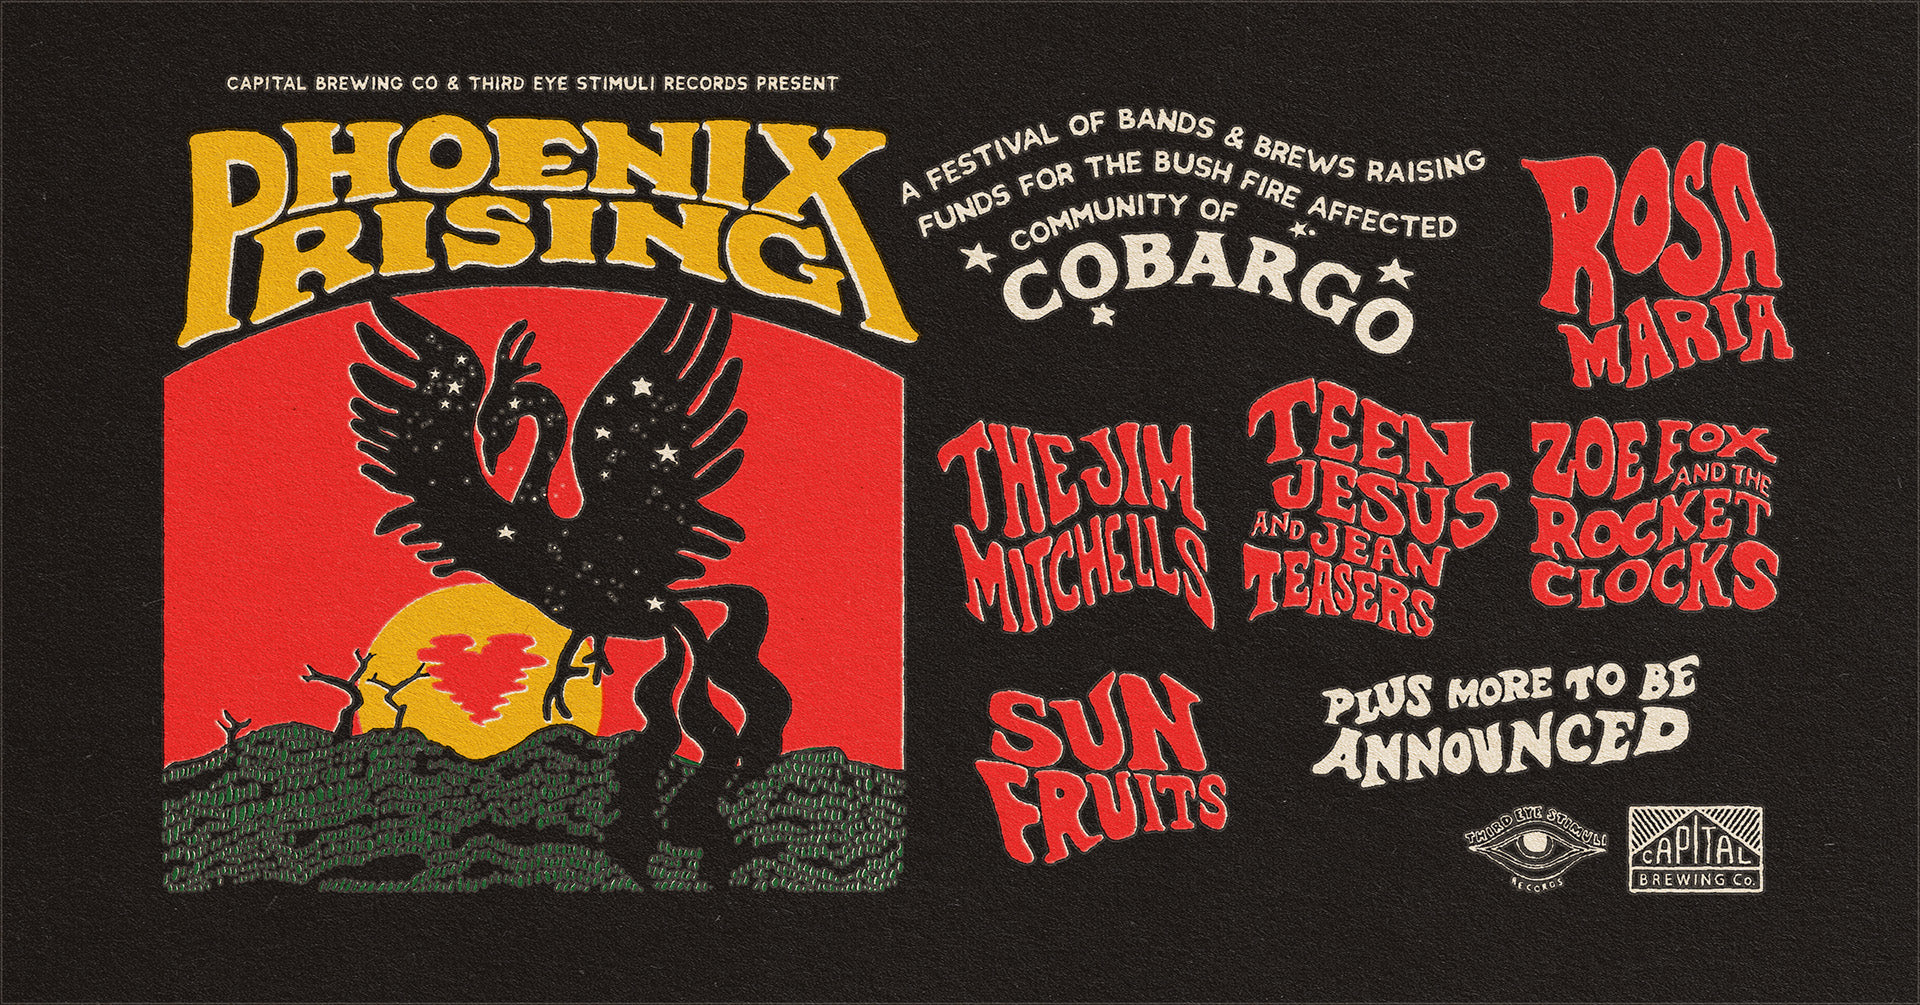 Phoenix Rising: A festival of Bands & Brews for Cobargo | 28 March 2020